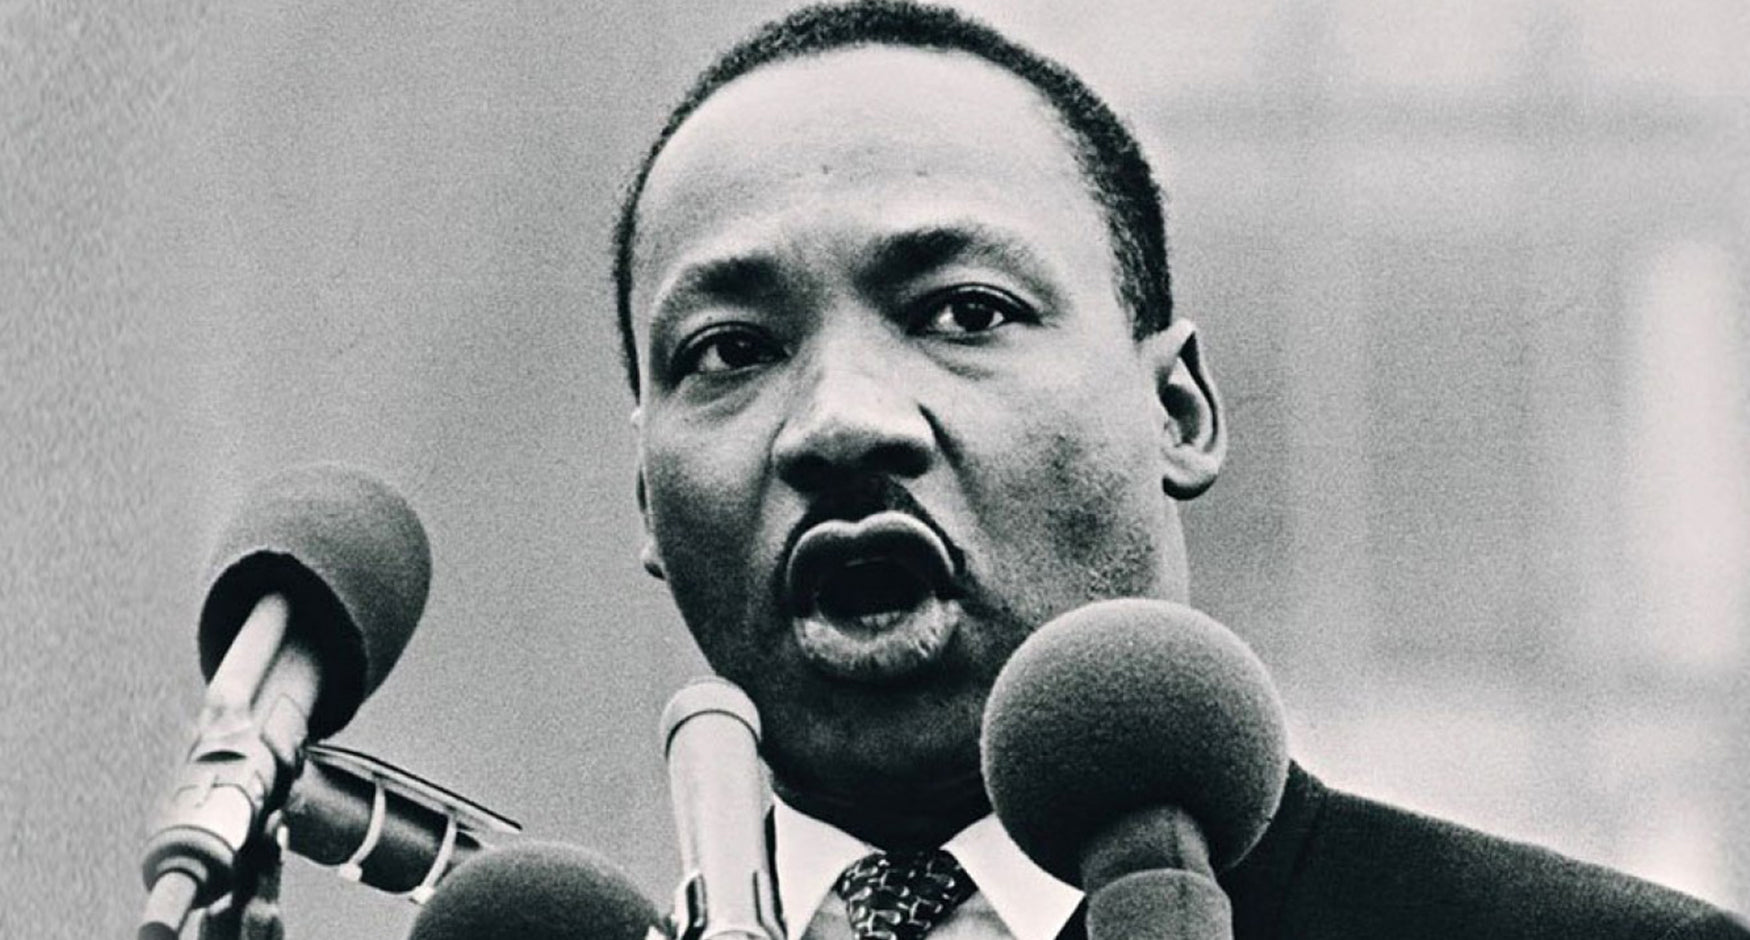 August 28, 1963: I have a dream